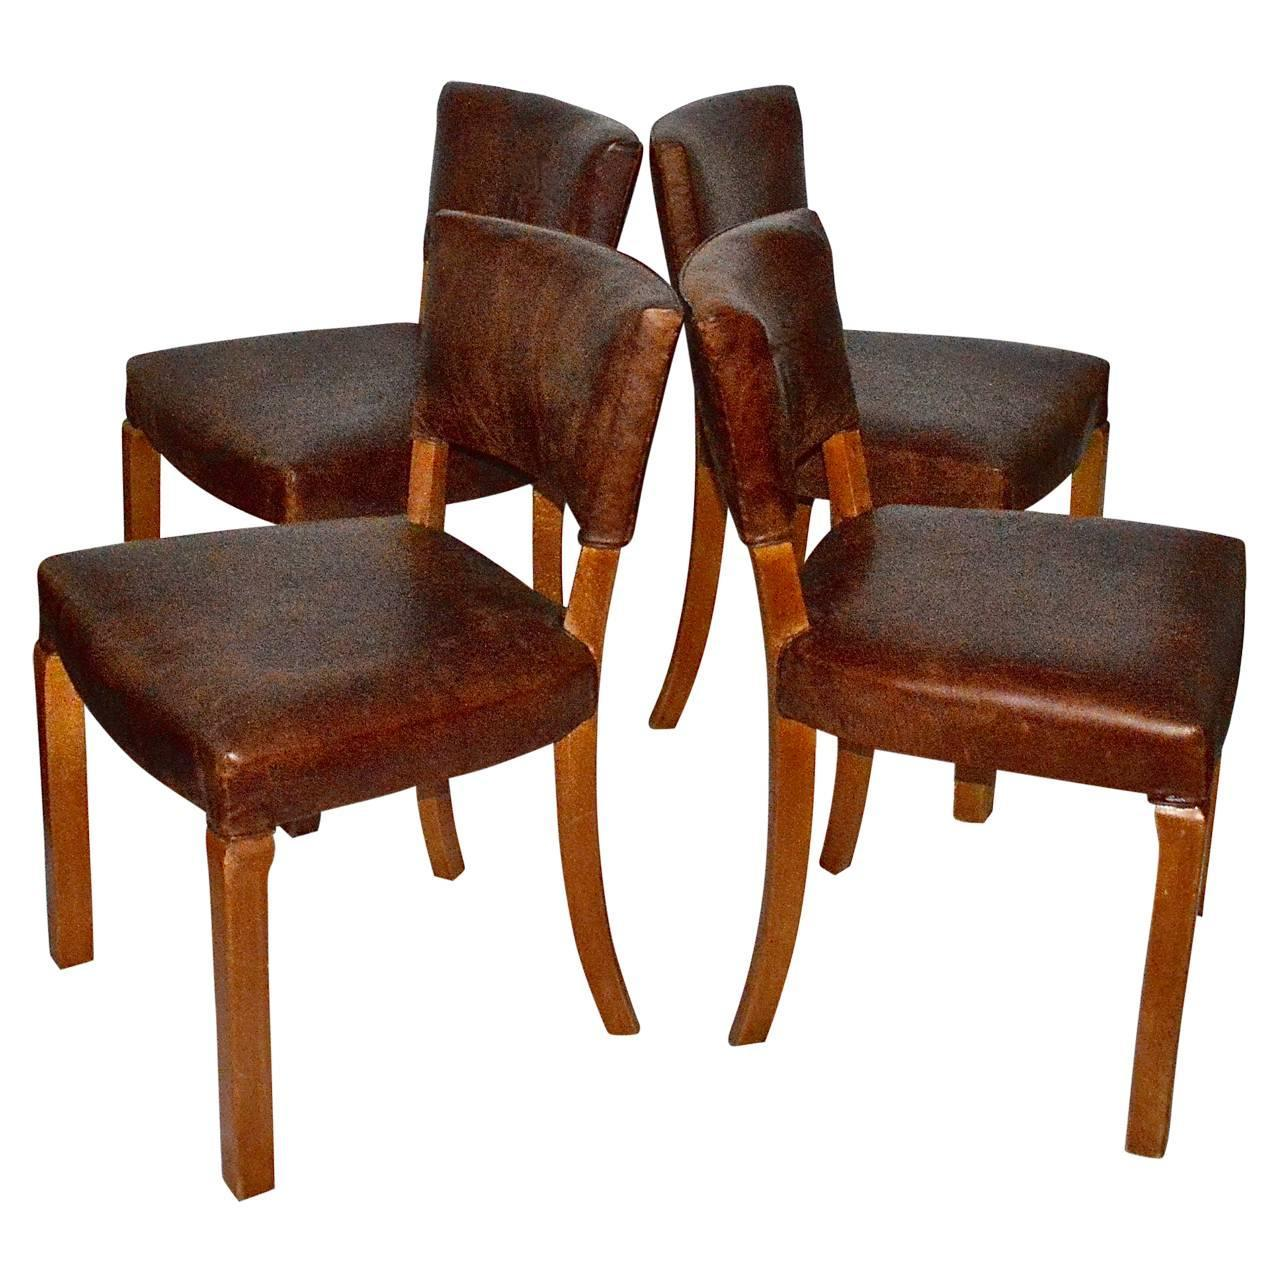 Artistic Dining Chairs 20th Century Art Deco Leather Dining Chairs For Sale At